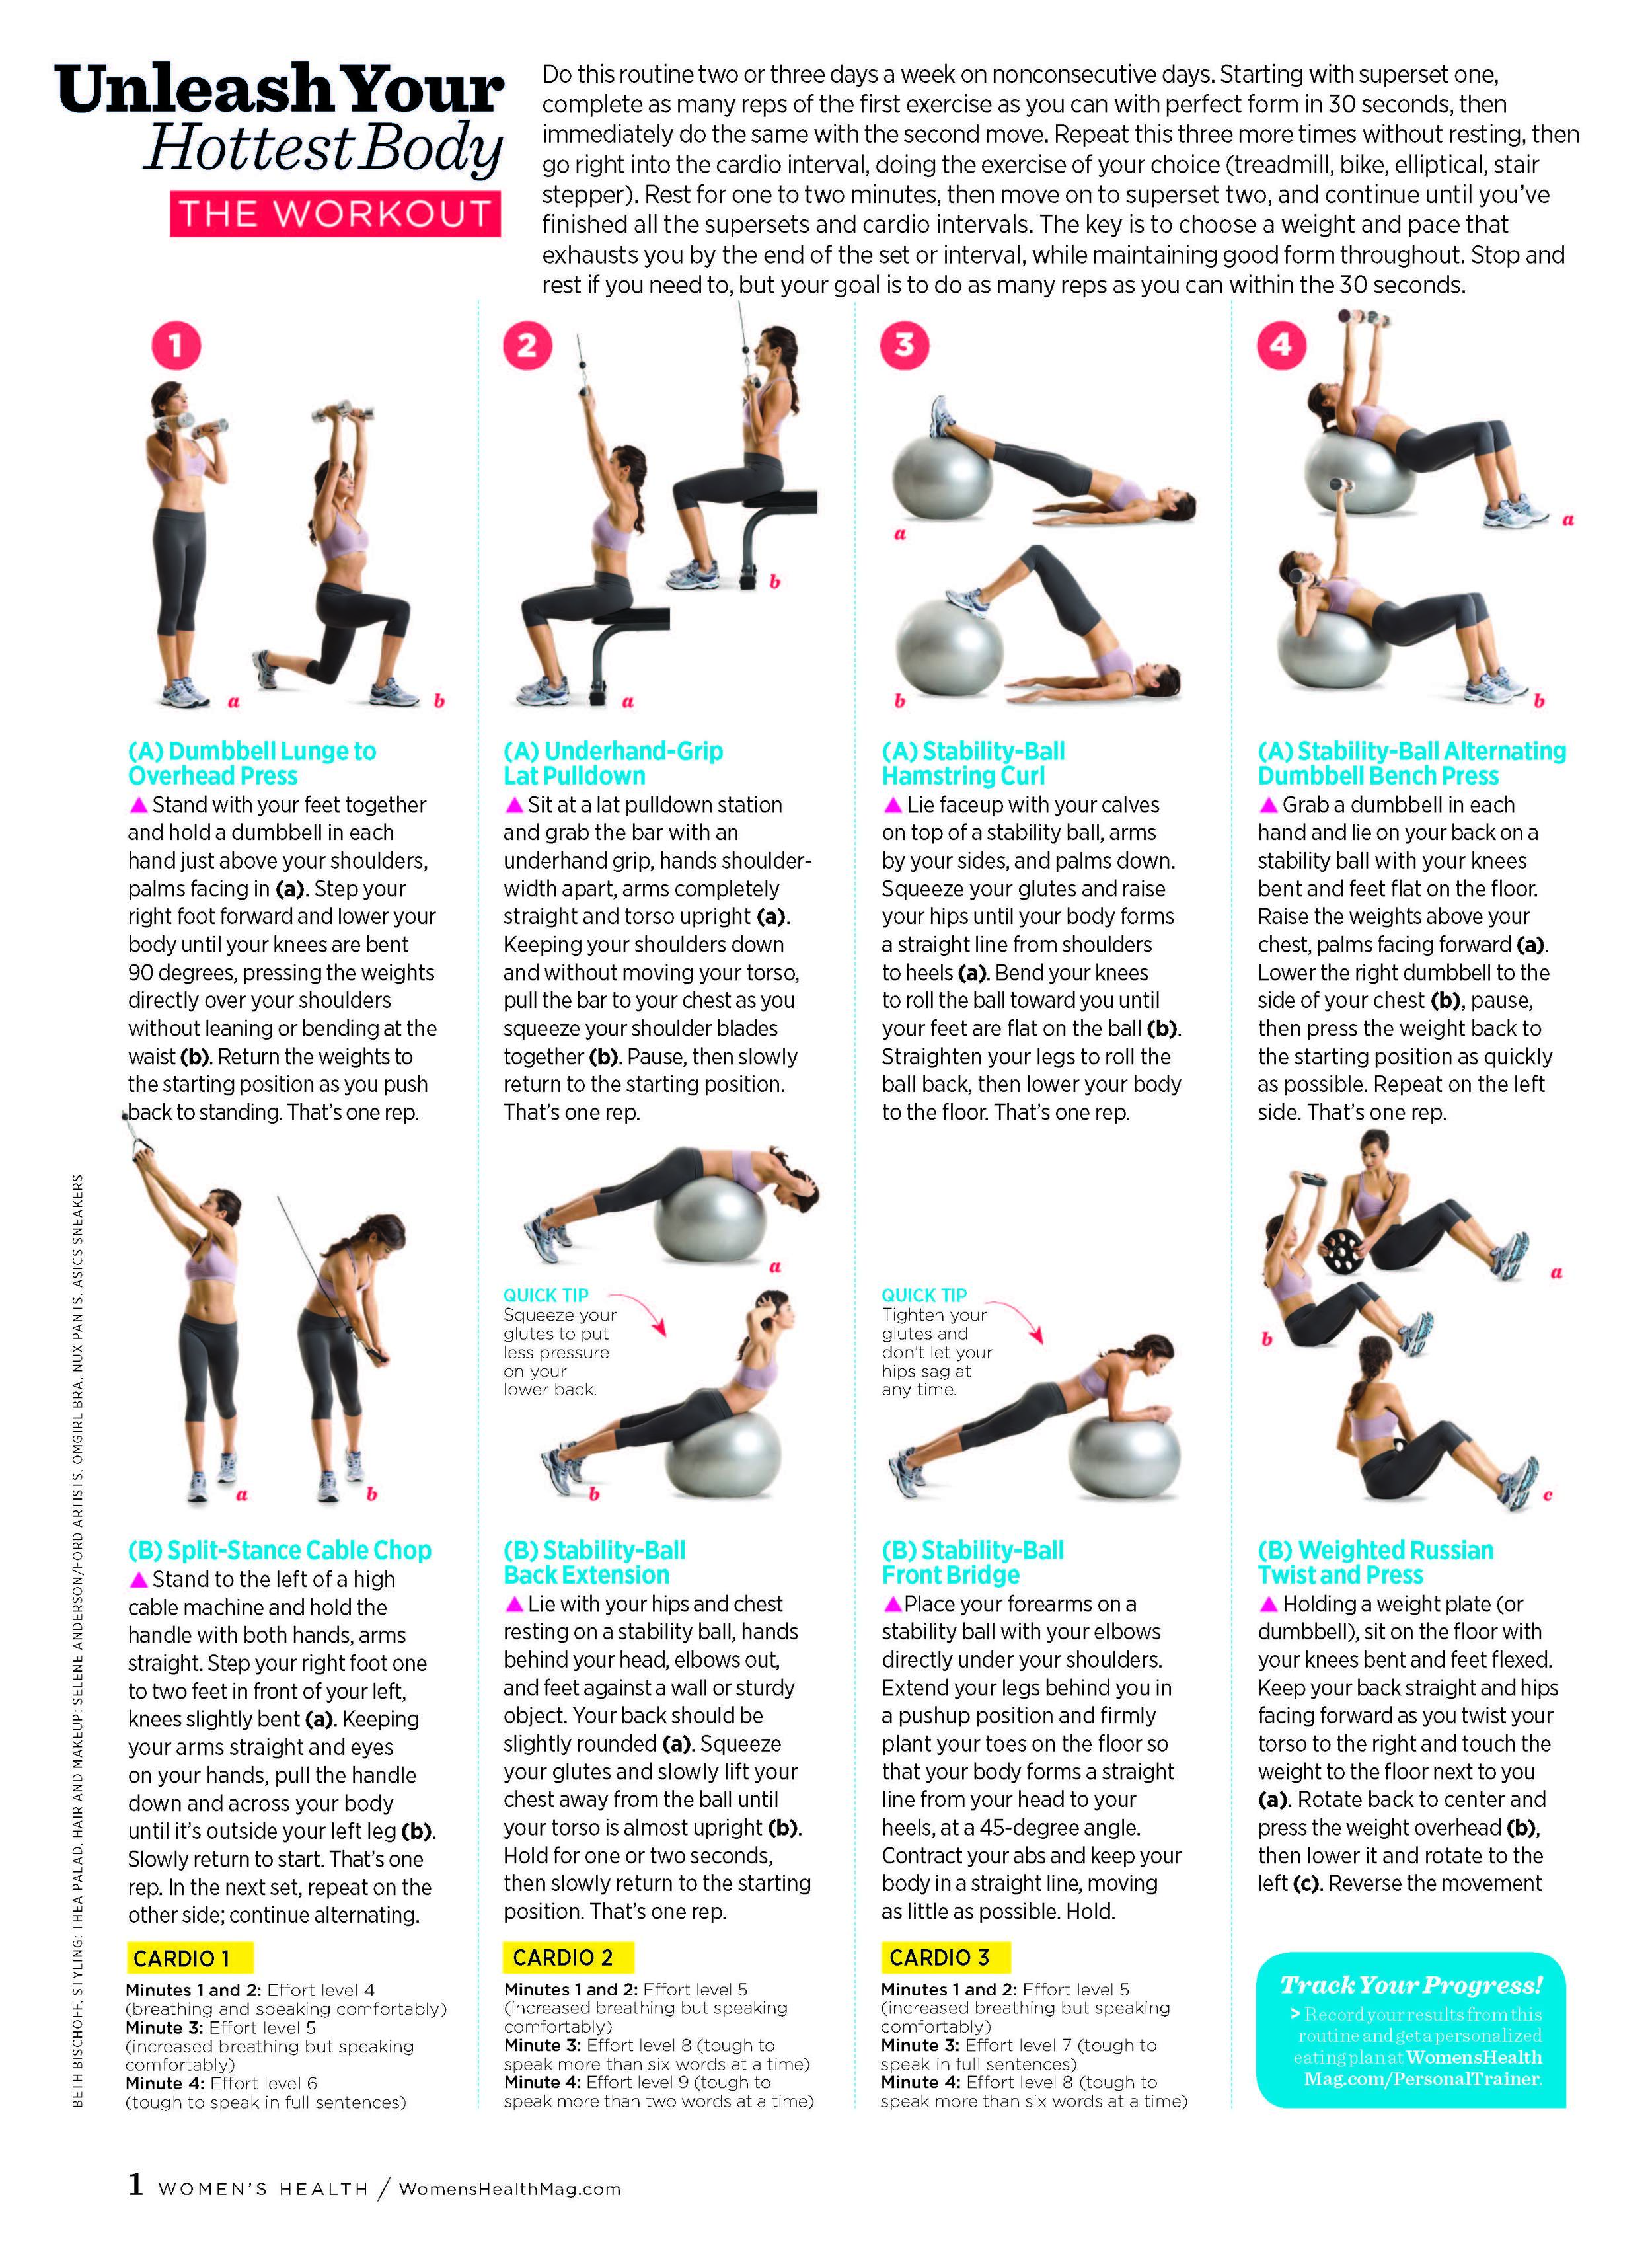 hot-body-workout